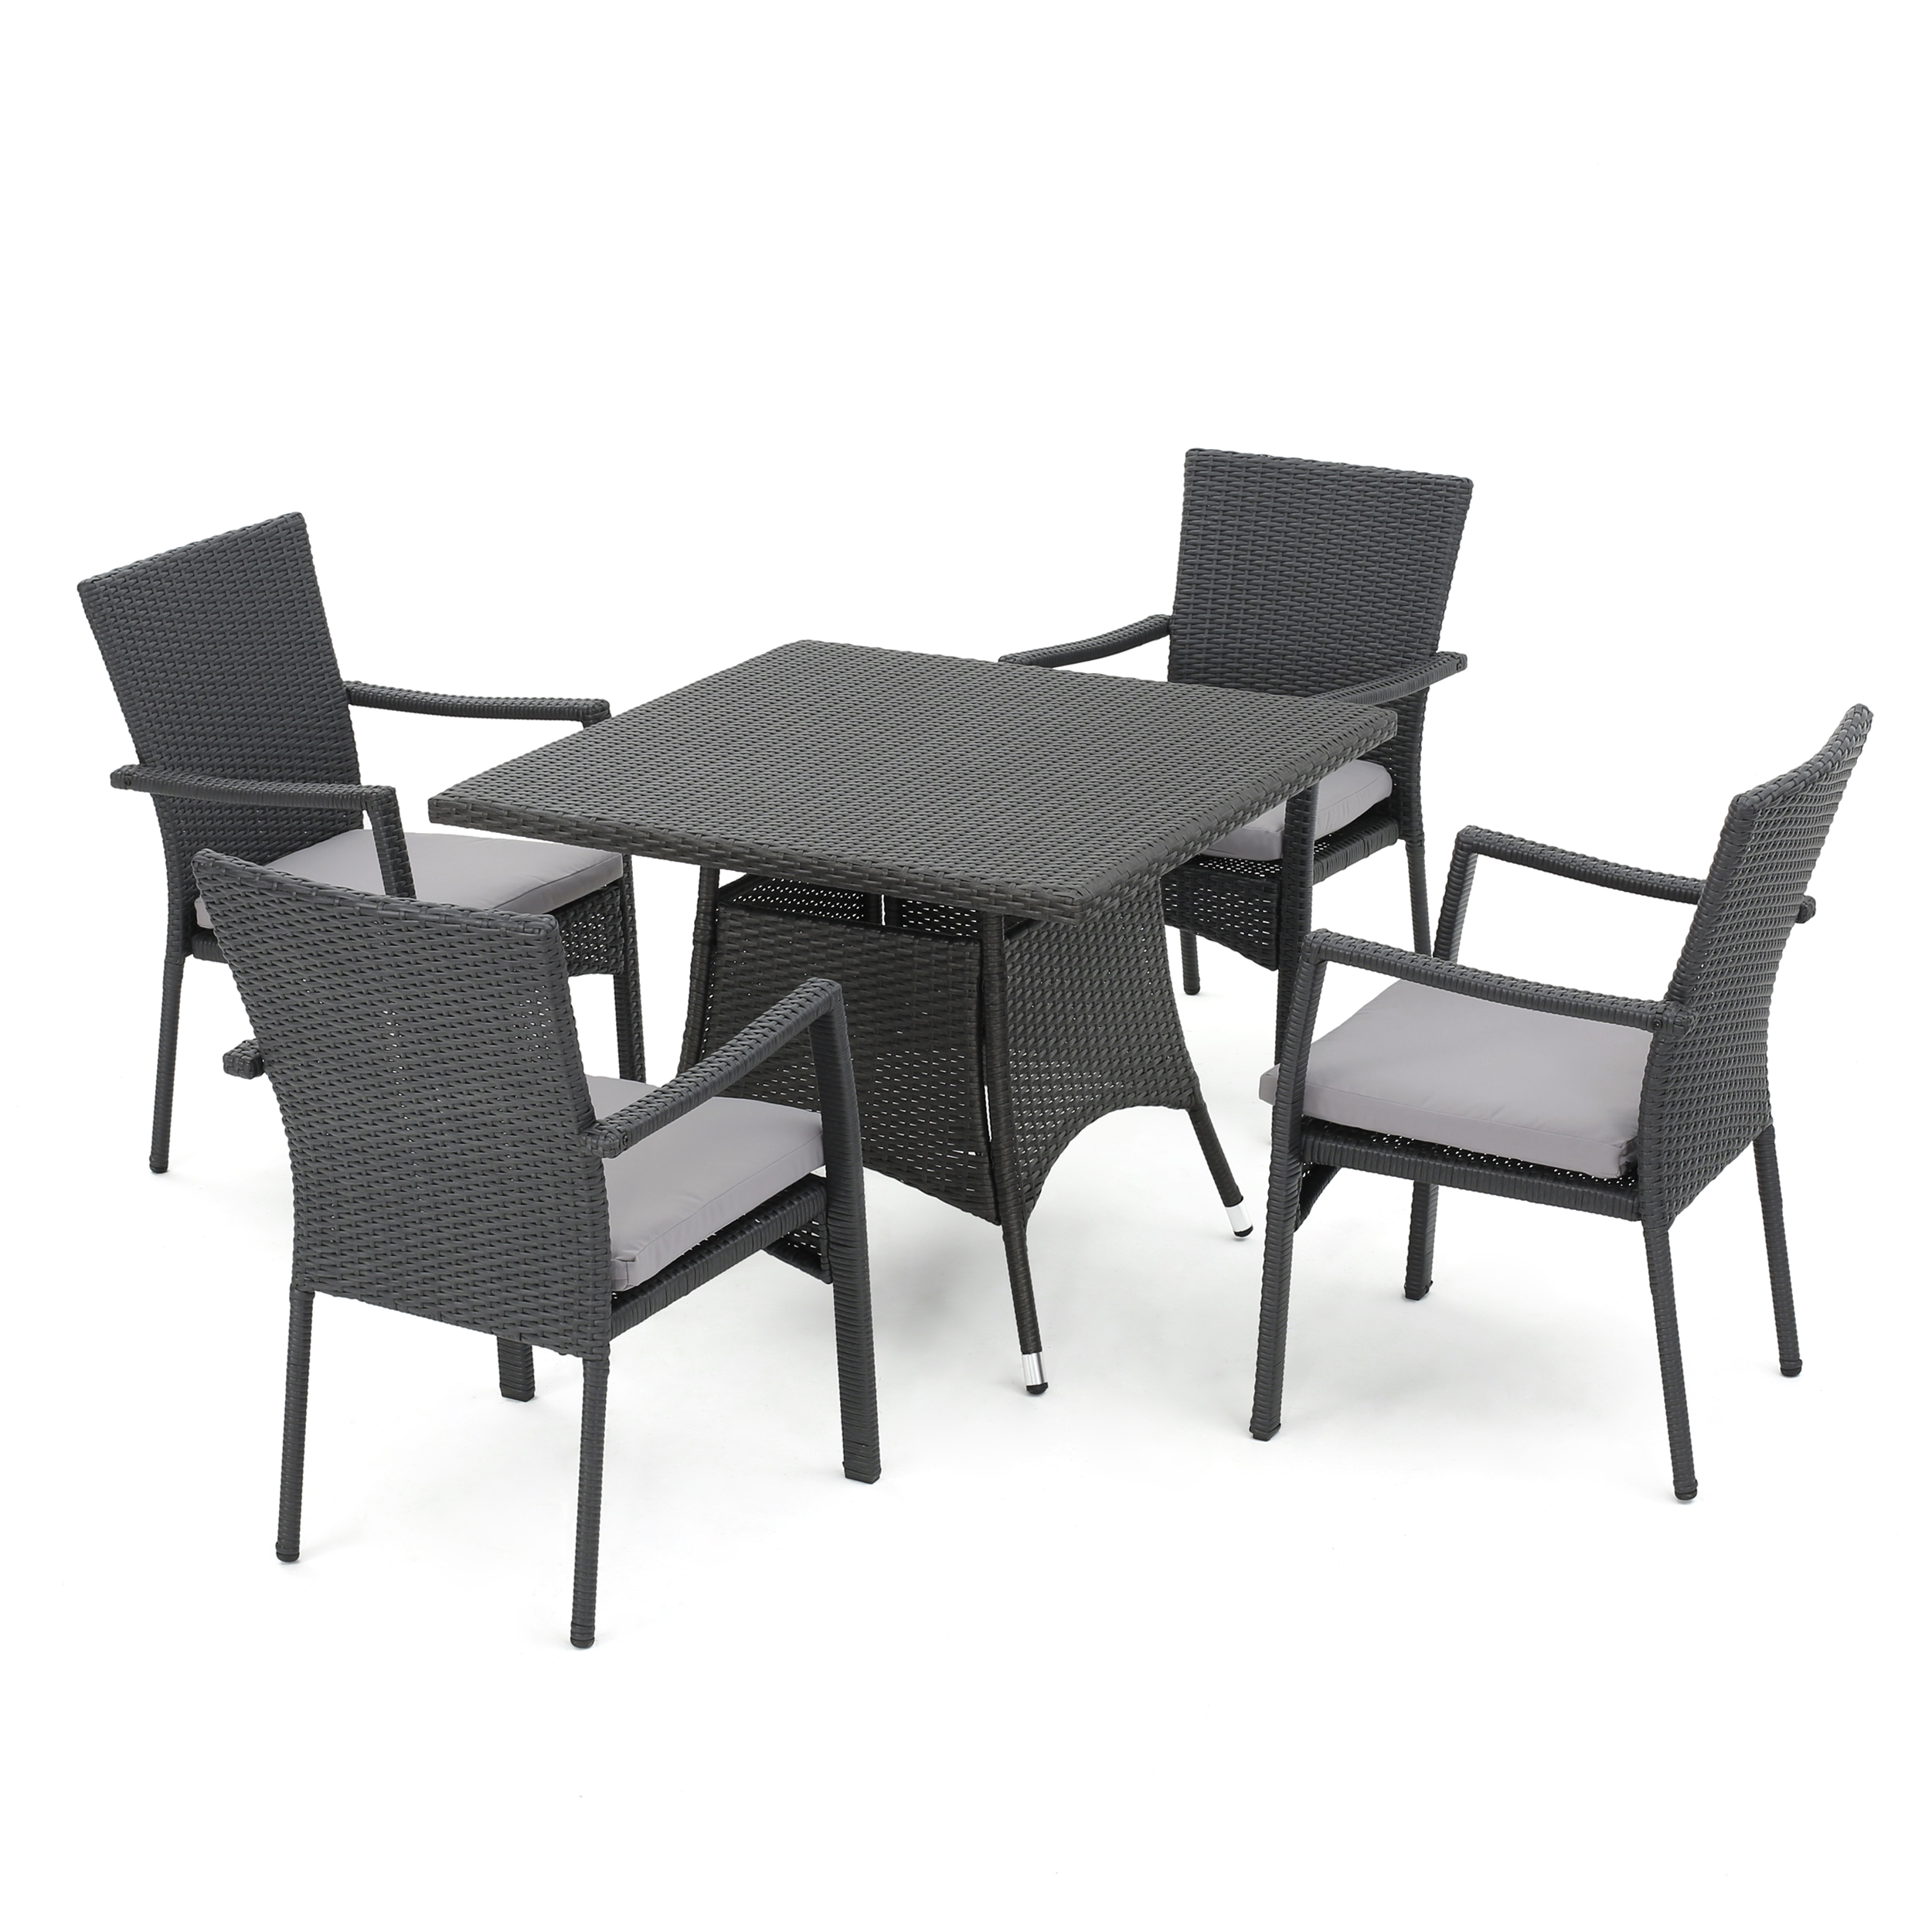 Cabella Outdoor 5-Piece Wicker Dining Set with Cushions, Grey